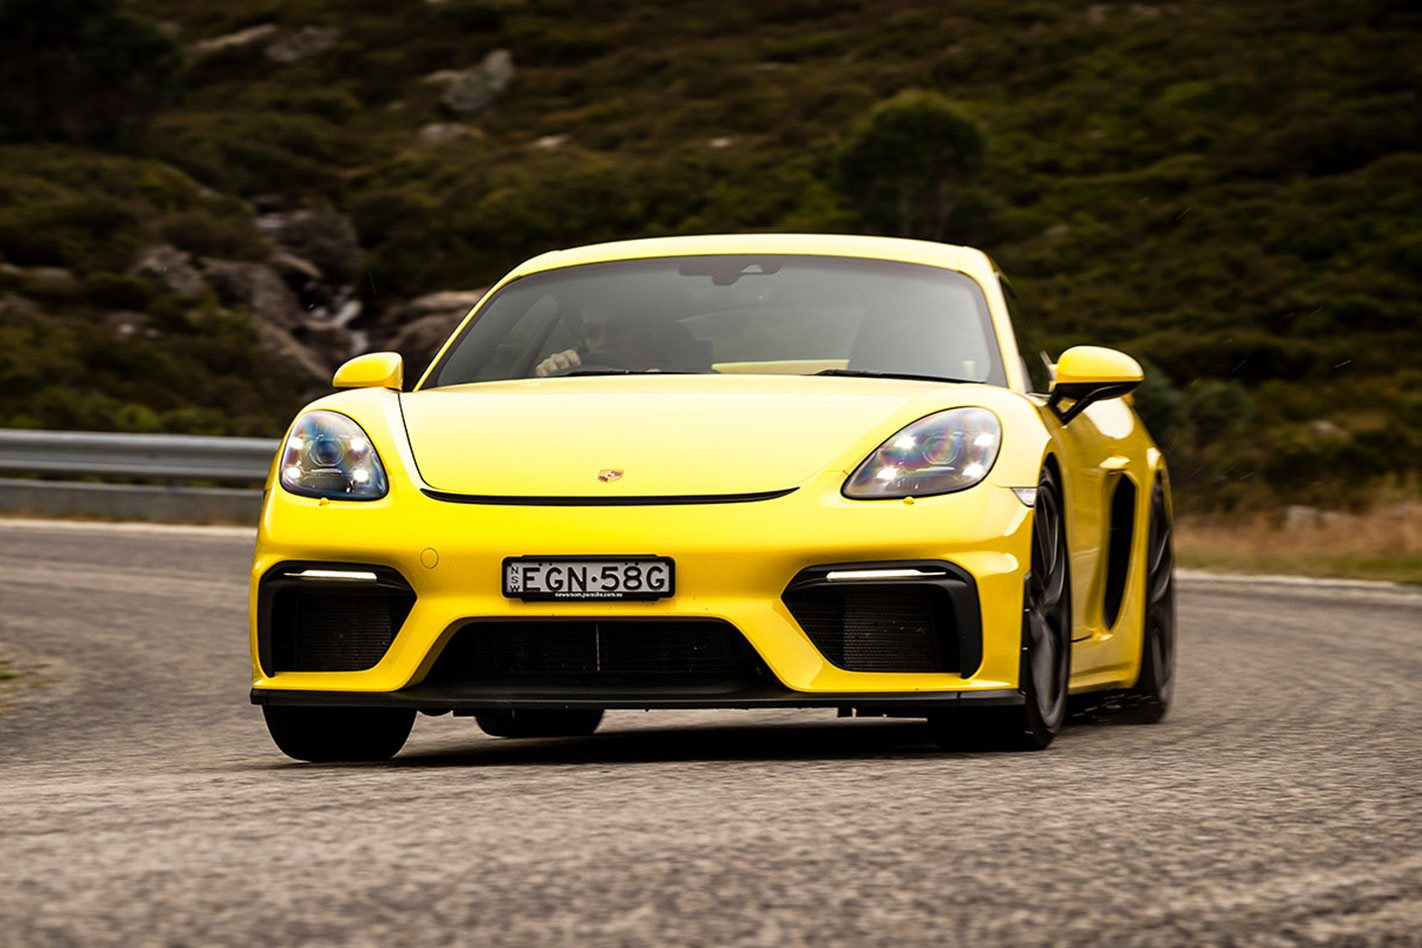 Why the Porsche 718 Cayman GT4 has weird gearing